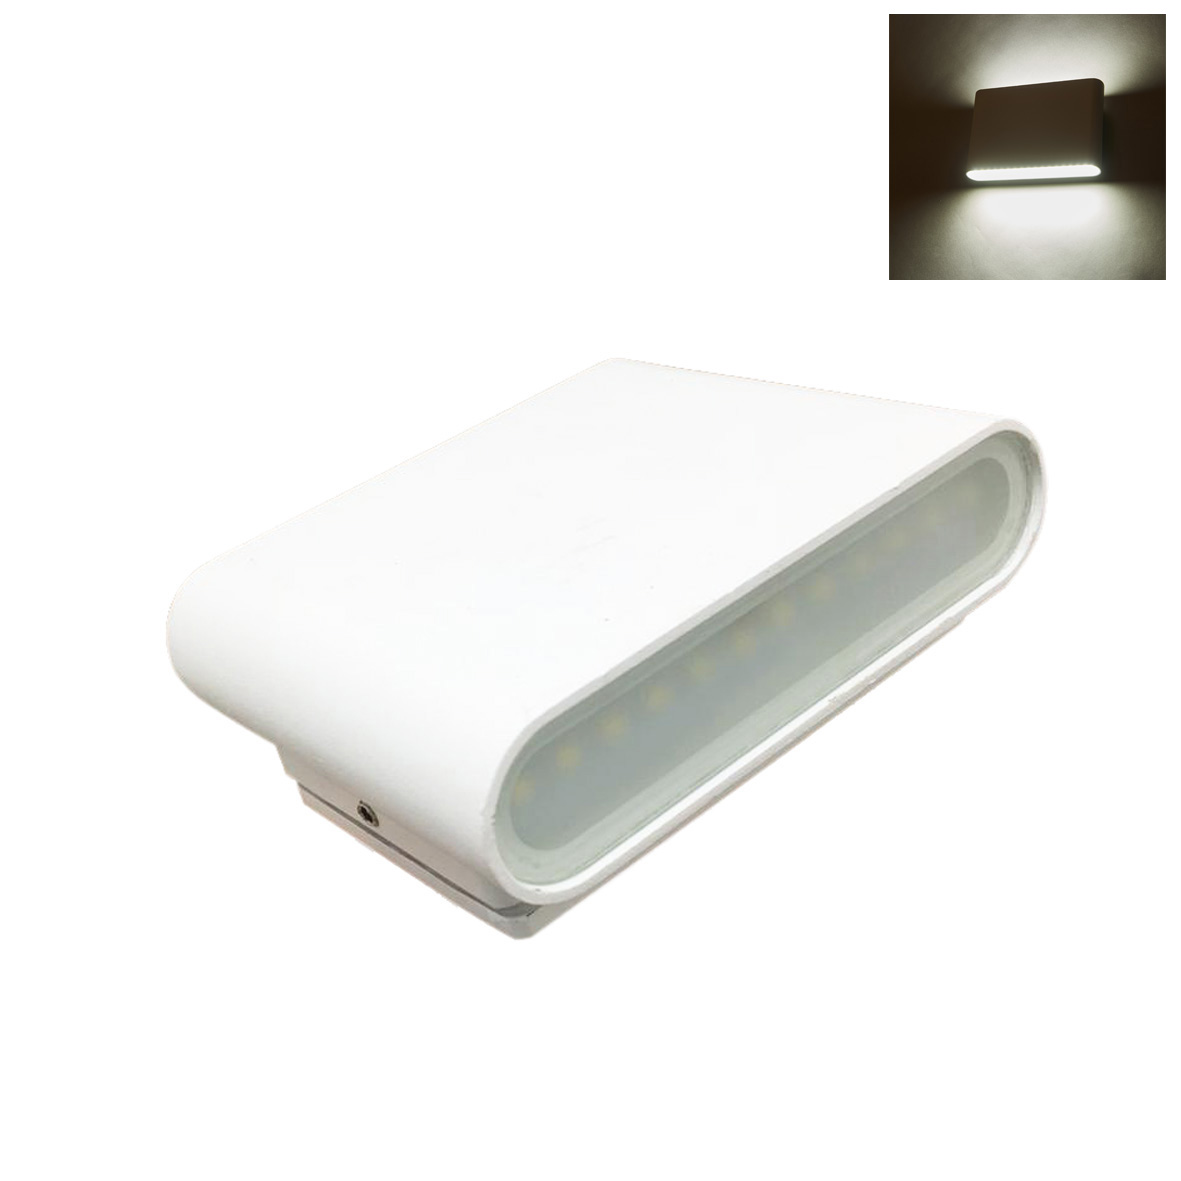 Lamp led double beam light 10w WHITE applique thin wall 220v